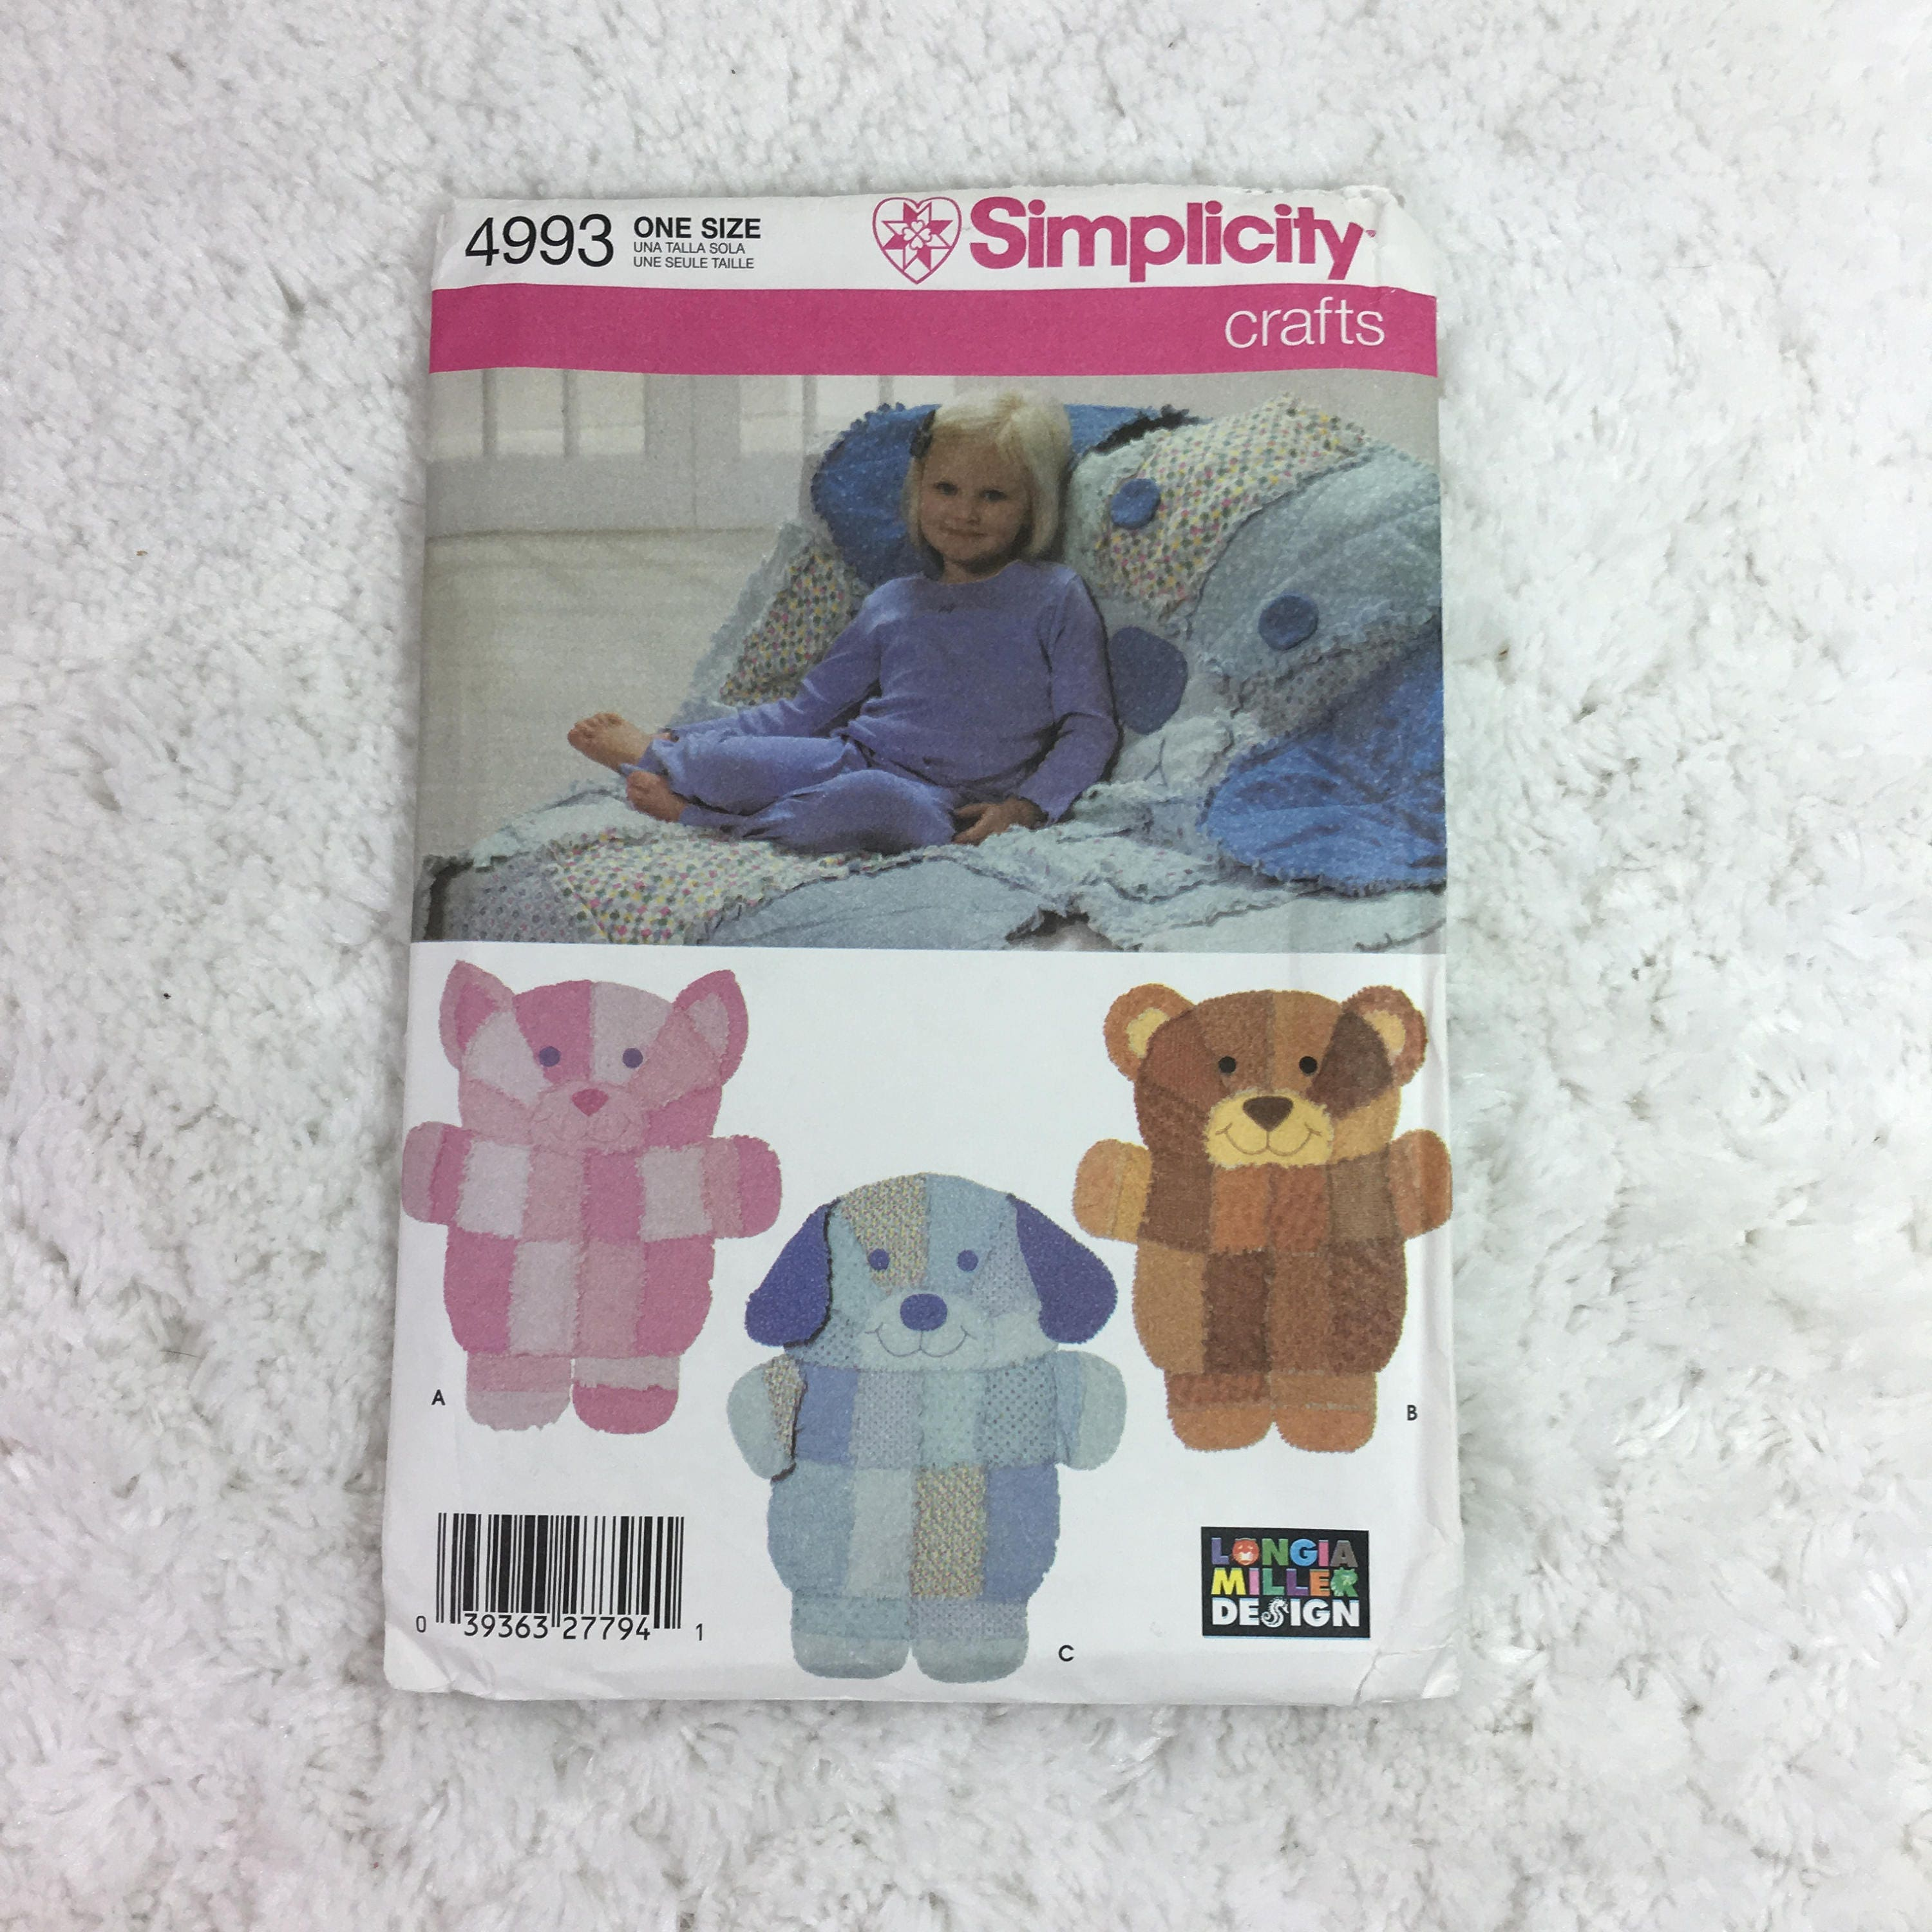 Simplicity 4993 crafts sewing pattern rag quilt wall for Simplicity craft pattern 4993